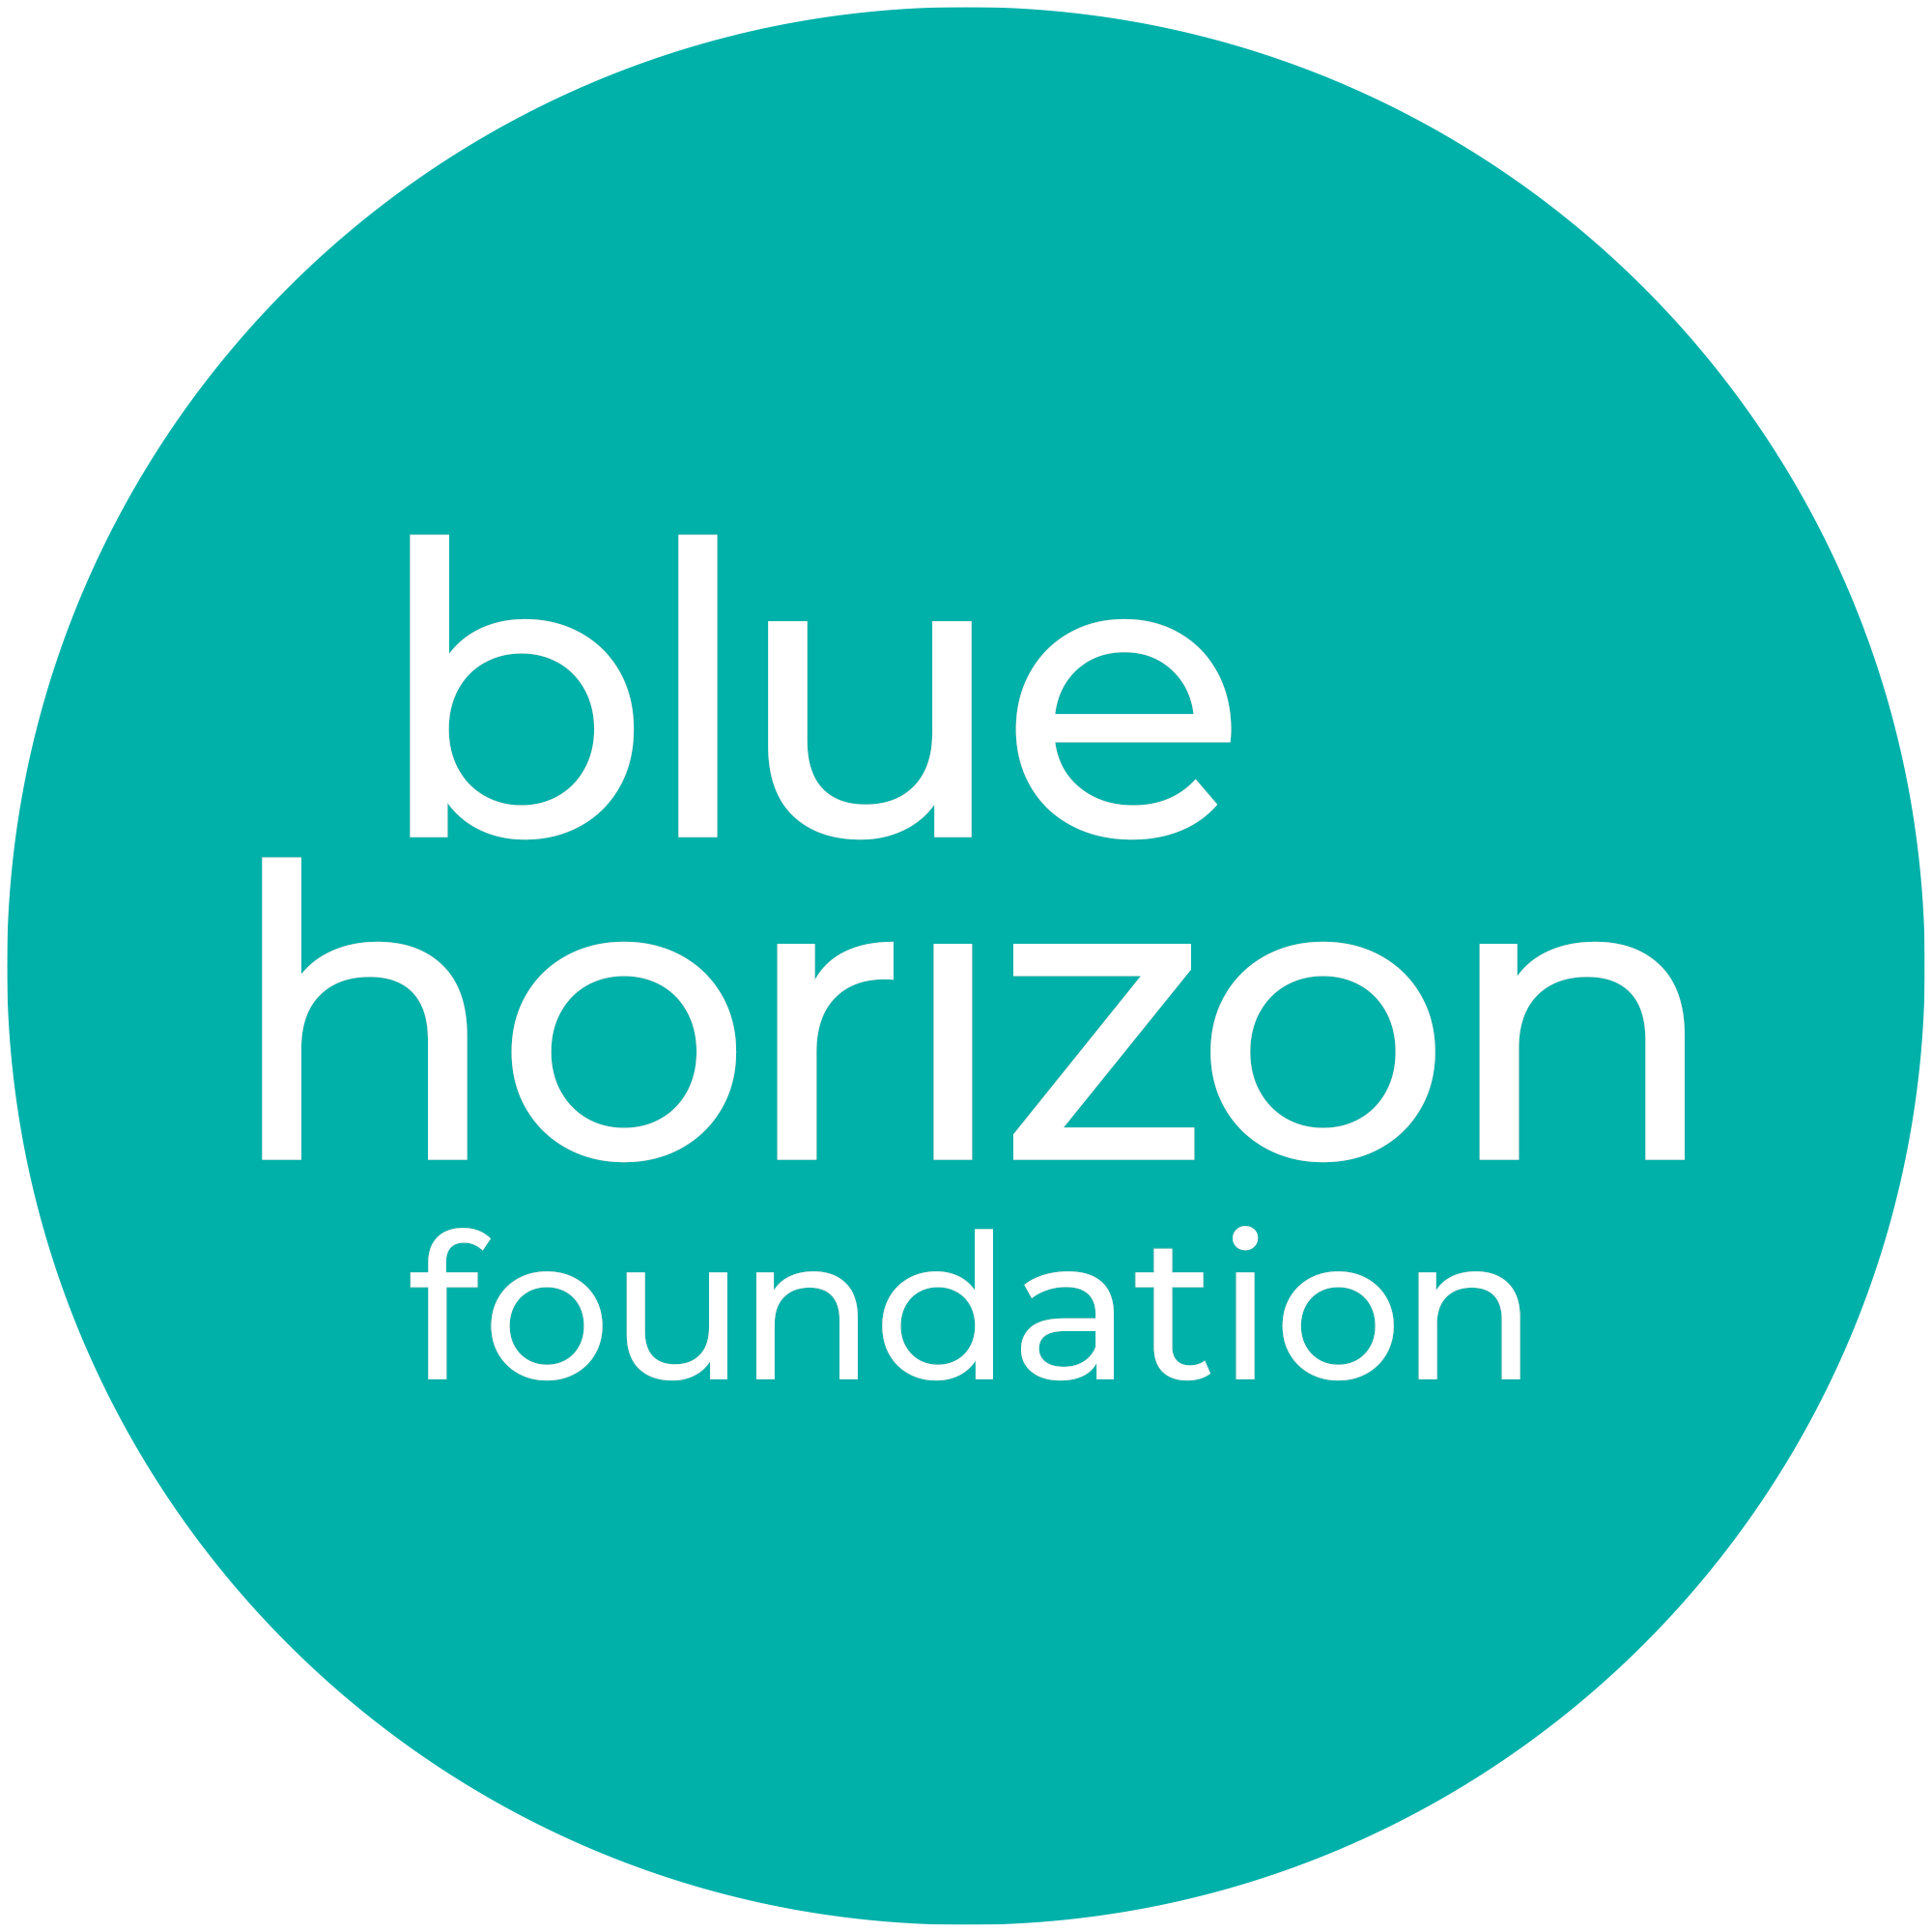 blue-horizon-foundation-logo